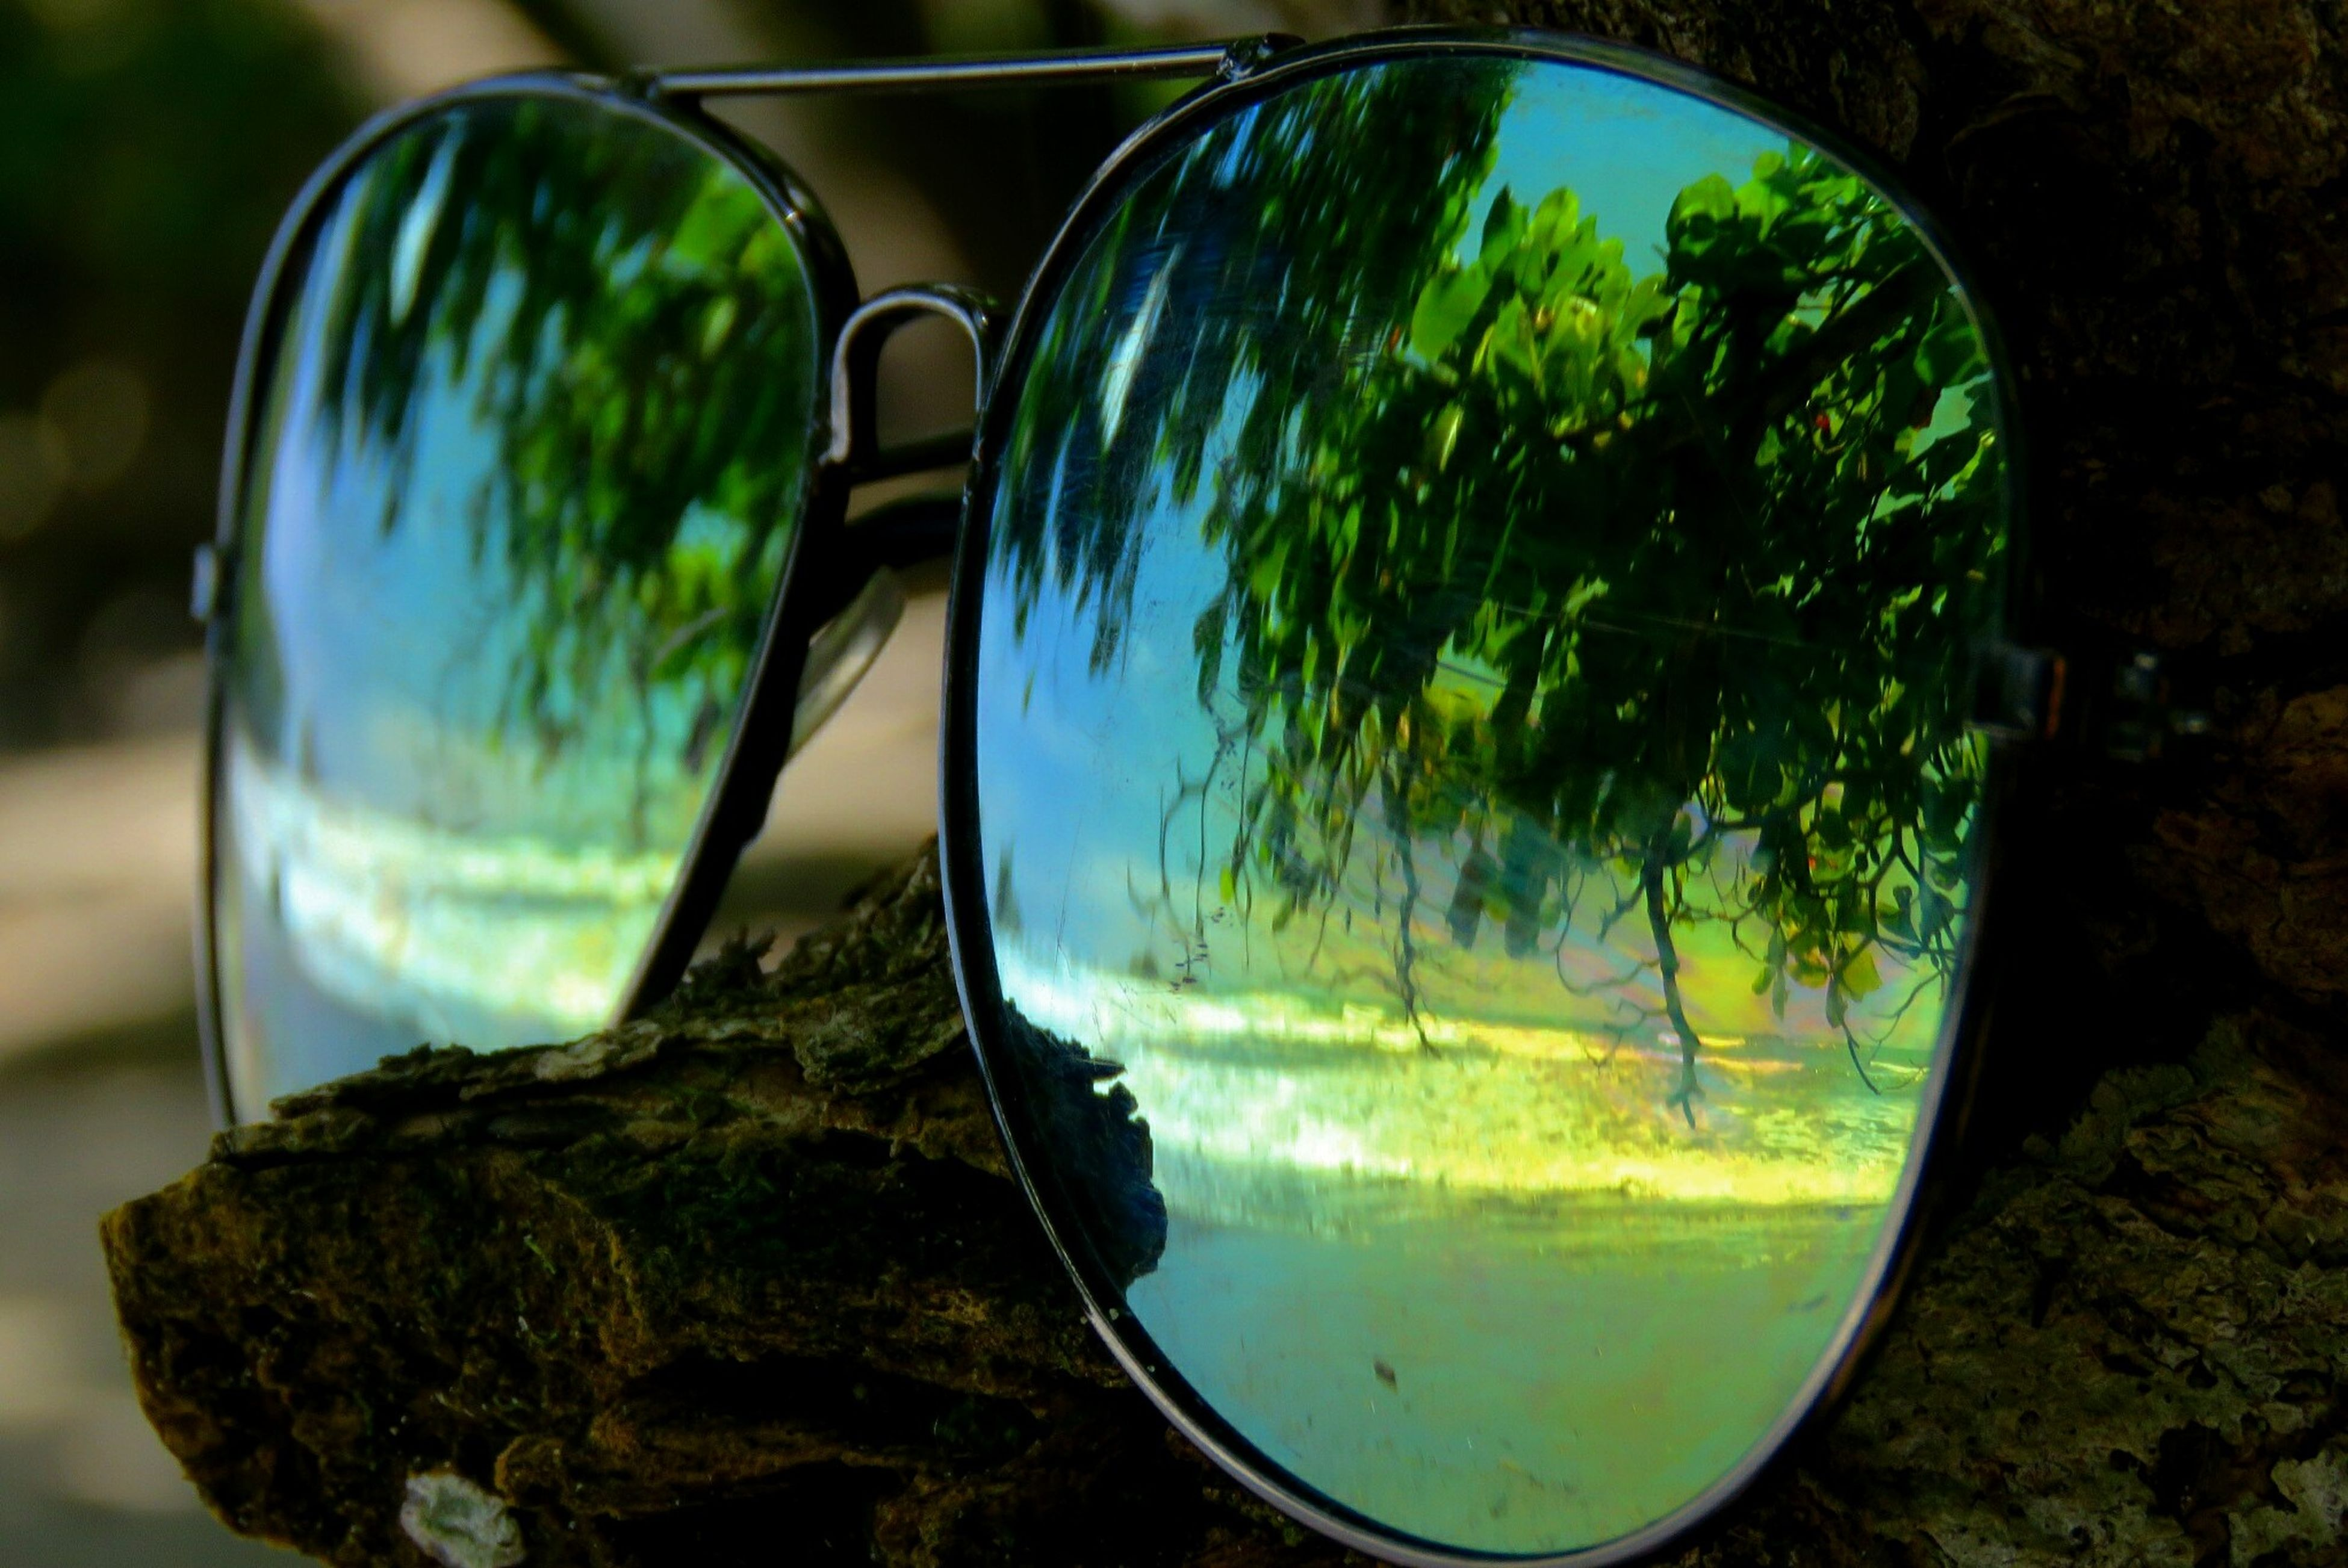 reflection, transparent, glass - material, close-up, mode of transport, water, blue, focus on foreground, day, tranquility, no people, freshness, scenics, green color, beauty in nature